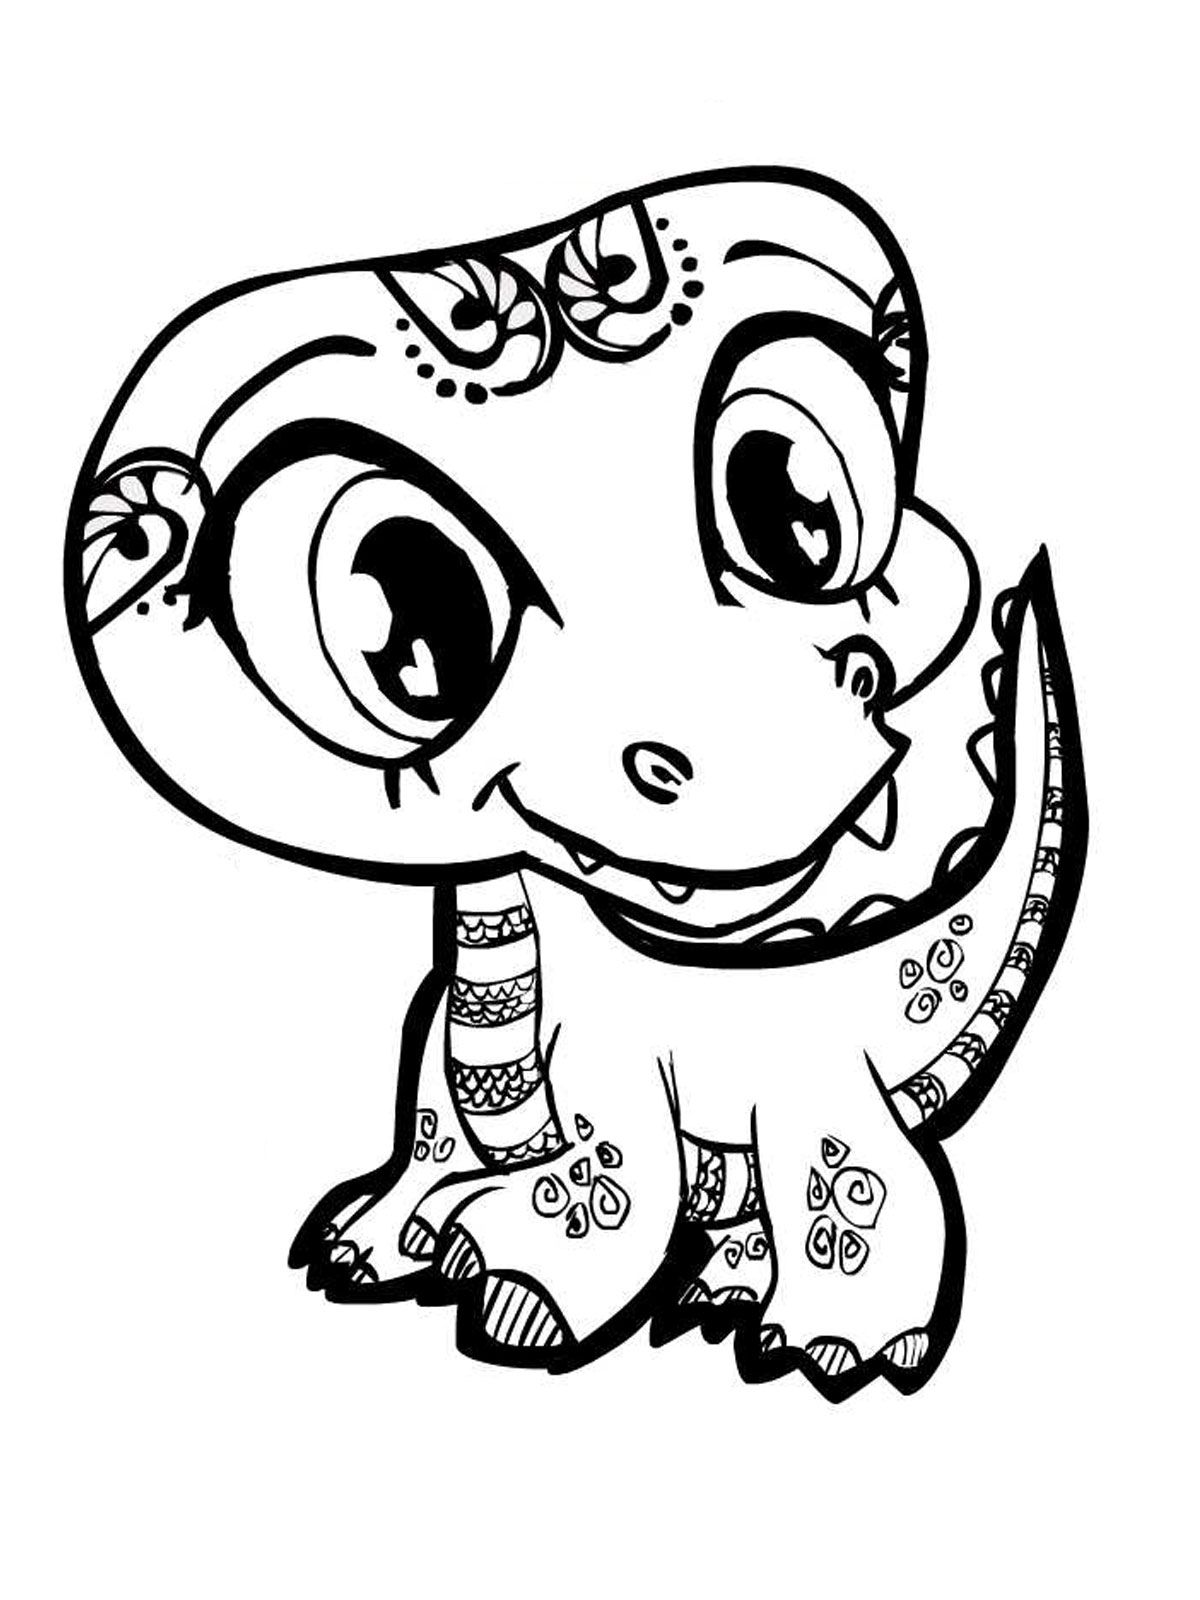 Cute Smiling Alligator Kids Coloring Pages Realisticcoloringpages Com Jpg 1200 1600 Animal Coloring Pages Dinosaur Coloring Pages Cute Coloring Pages